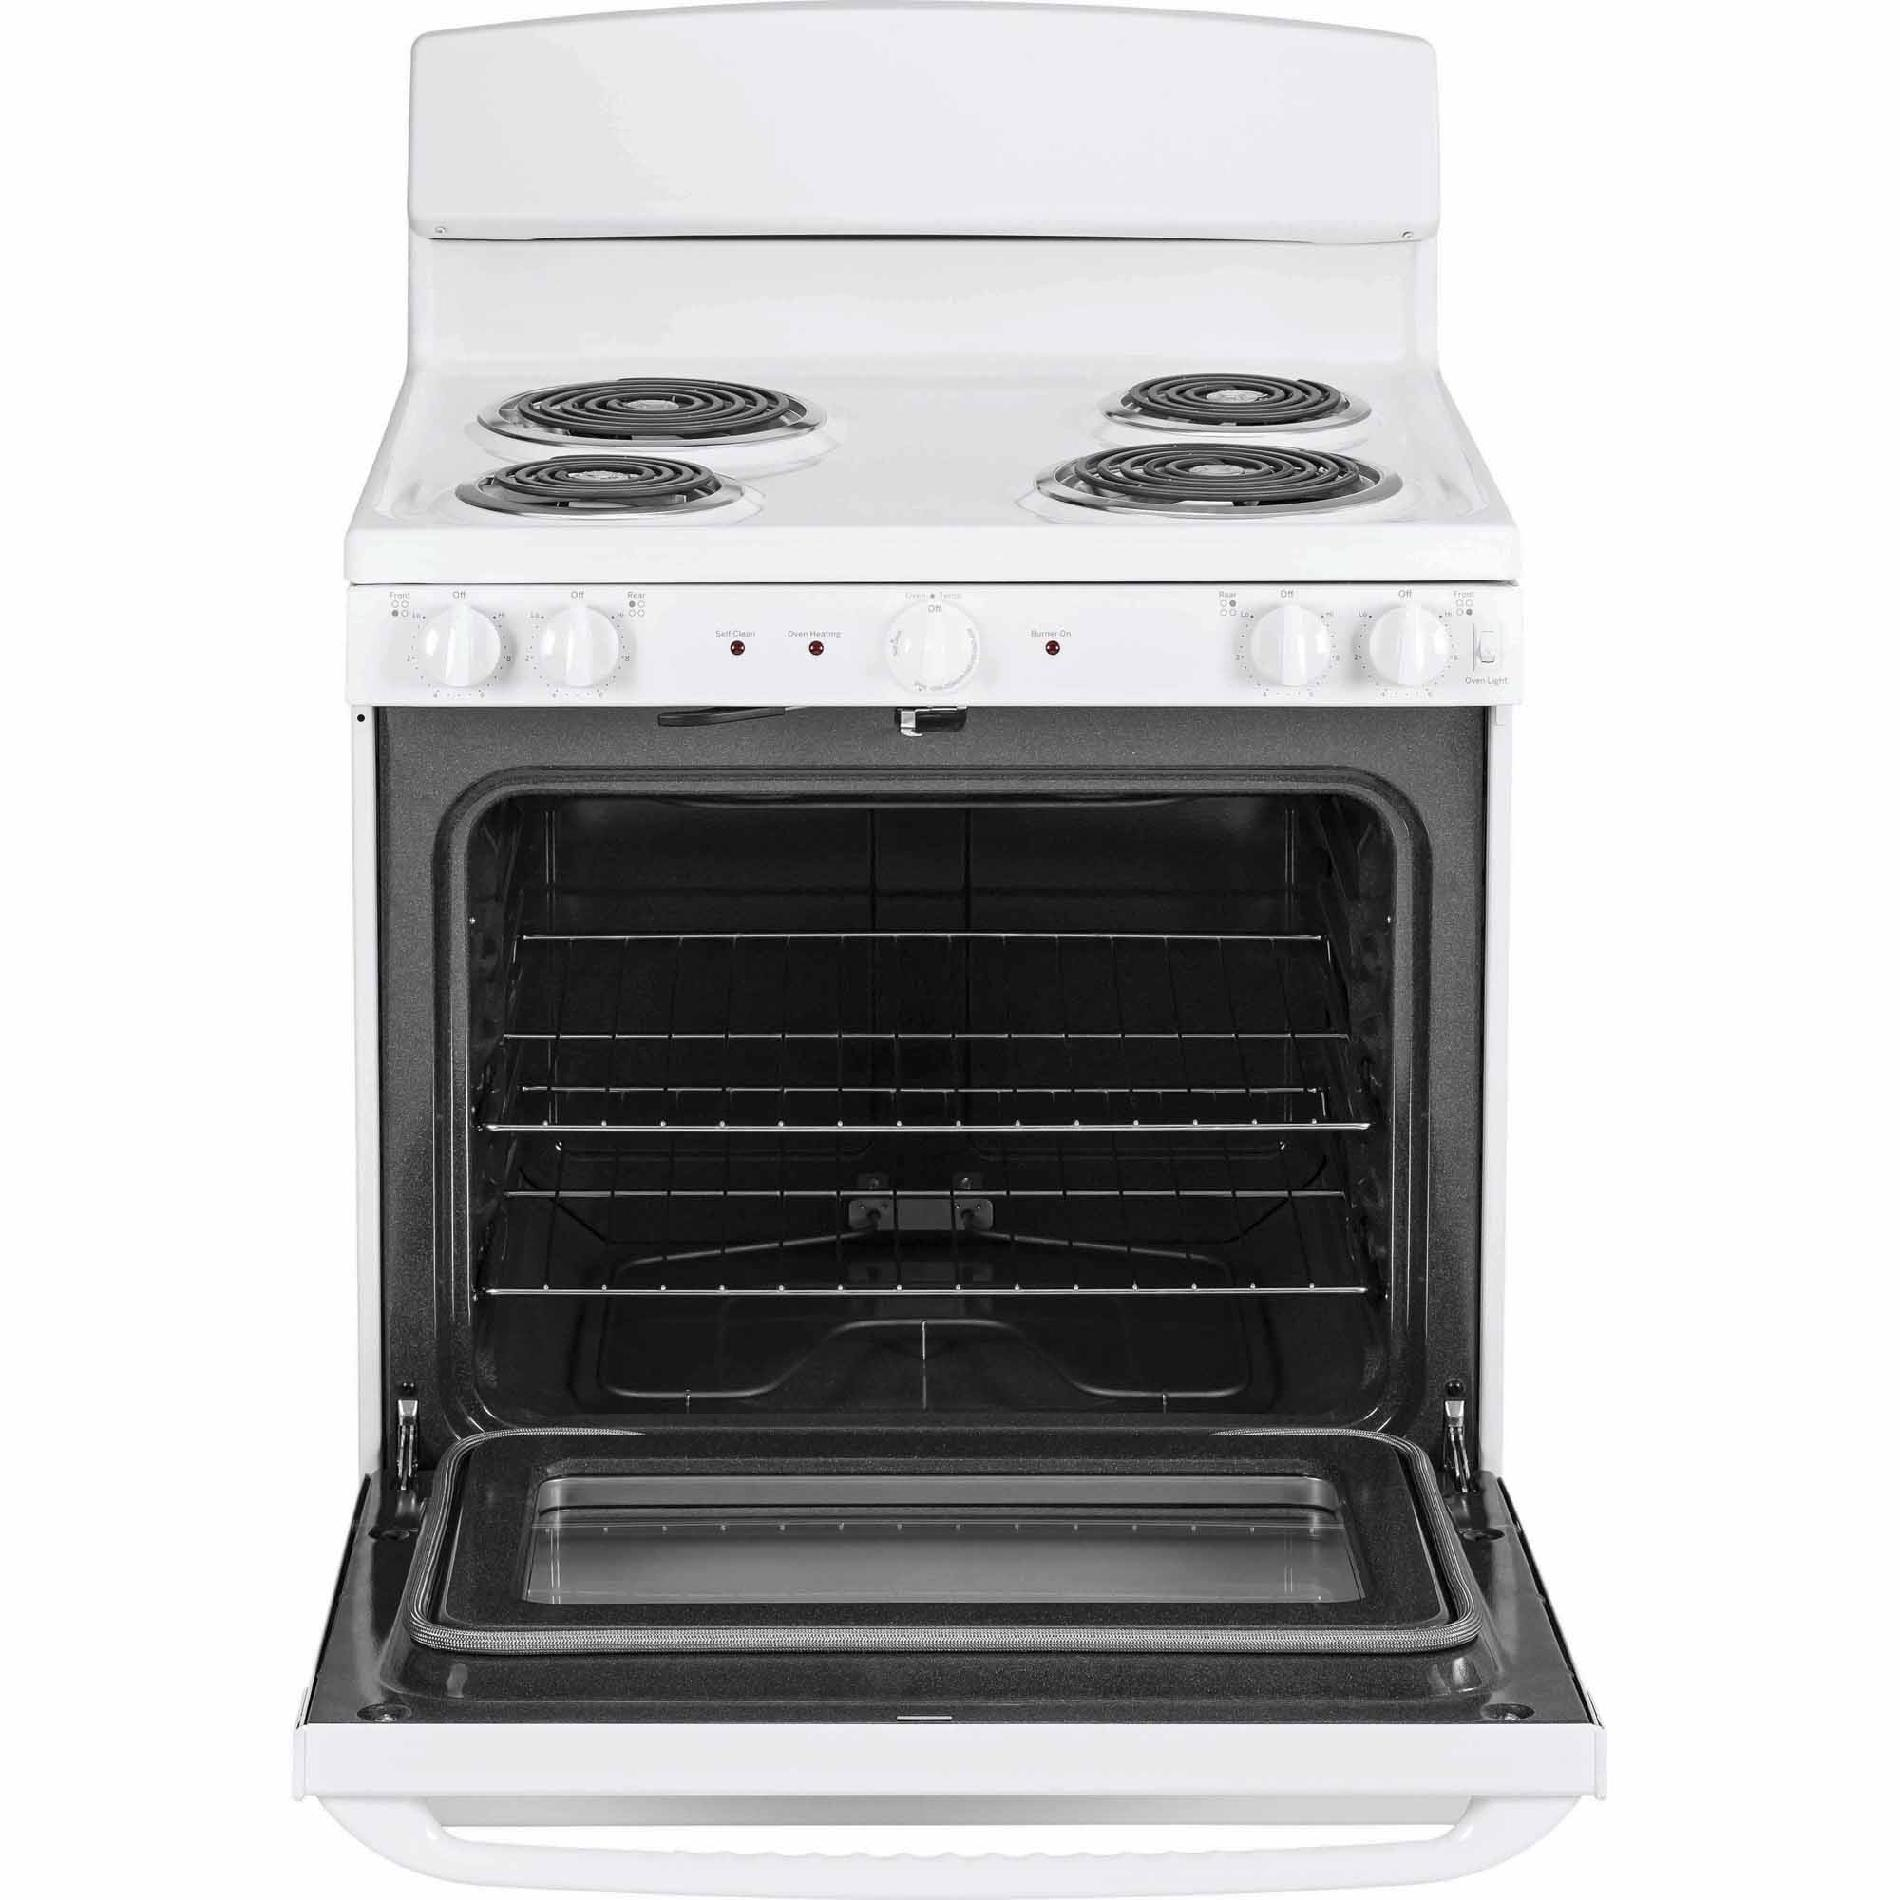 GE Appliances JB450DFWW 5.0 cu. ft. Electric Range - White